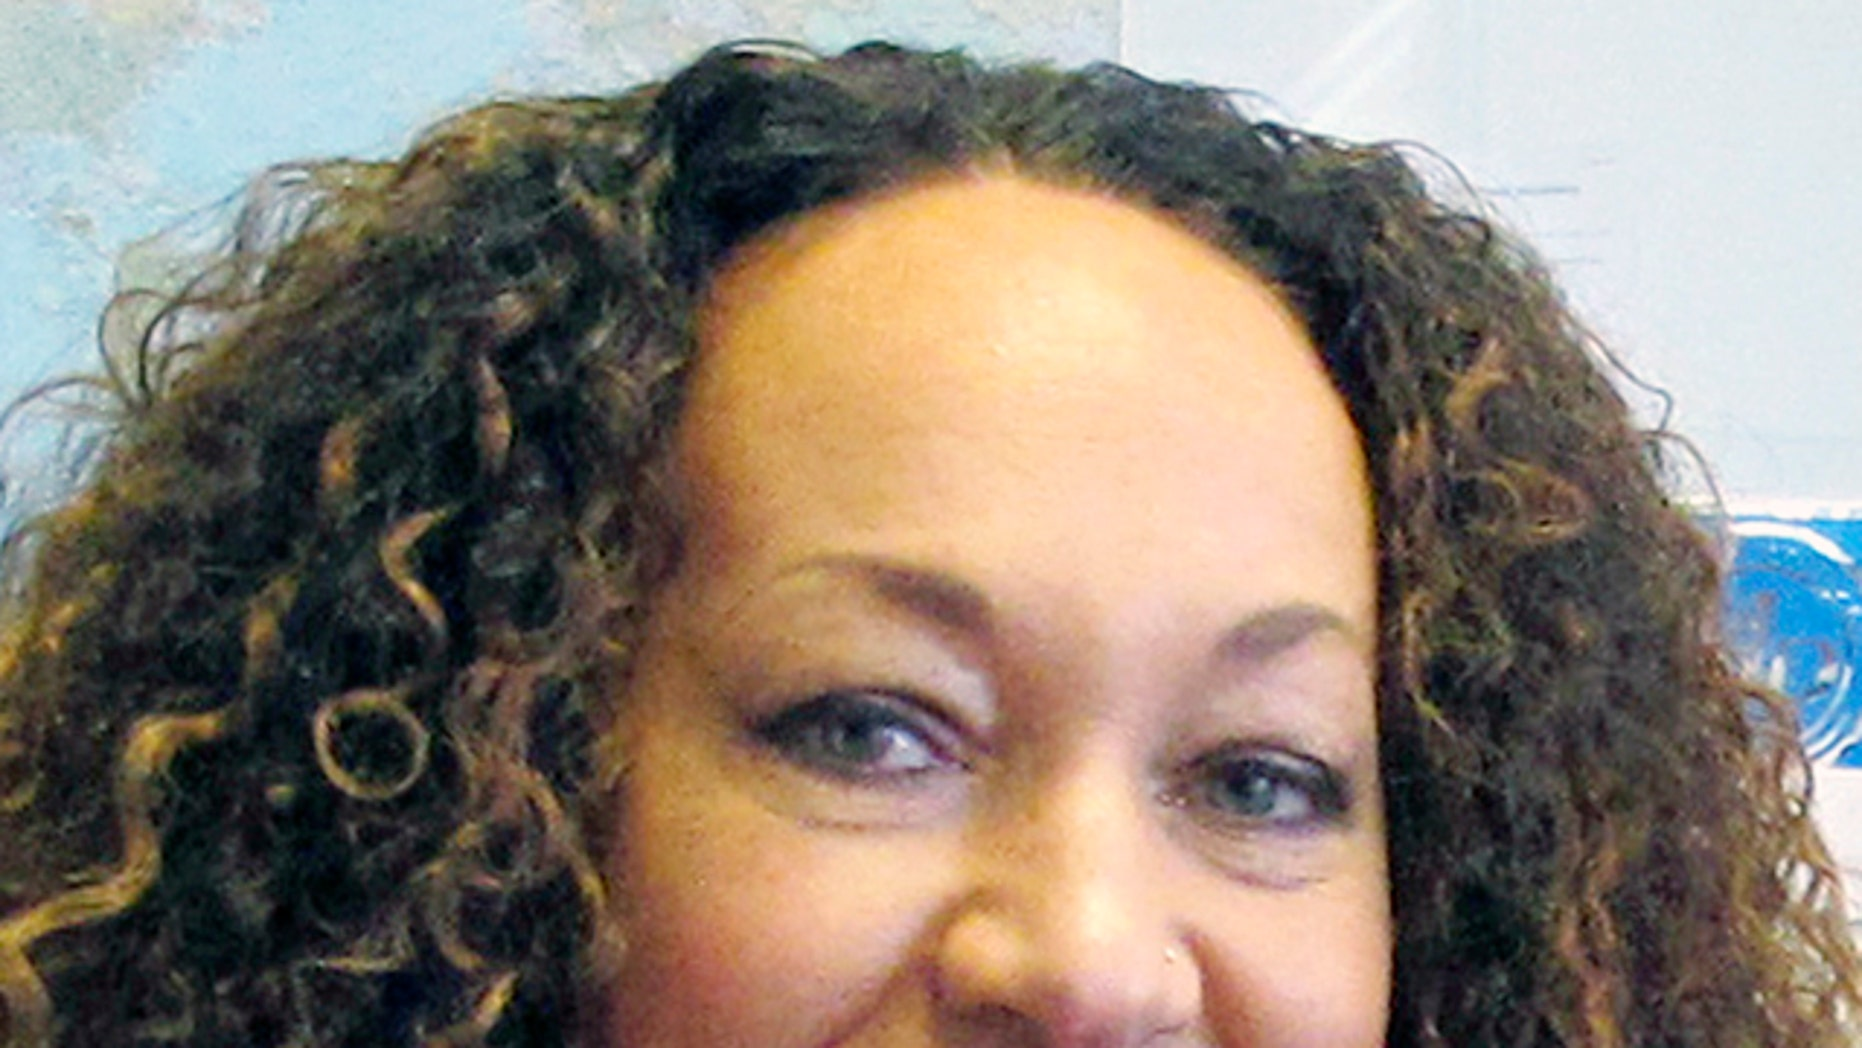 Rachel Dolezal is pictured in March 2017, six months after she changed her name to Nkechi Diallo.